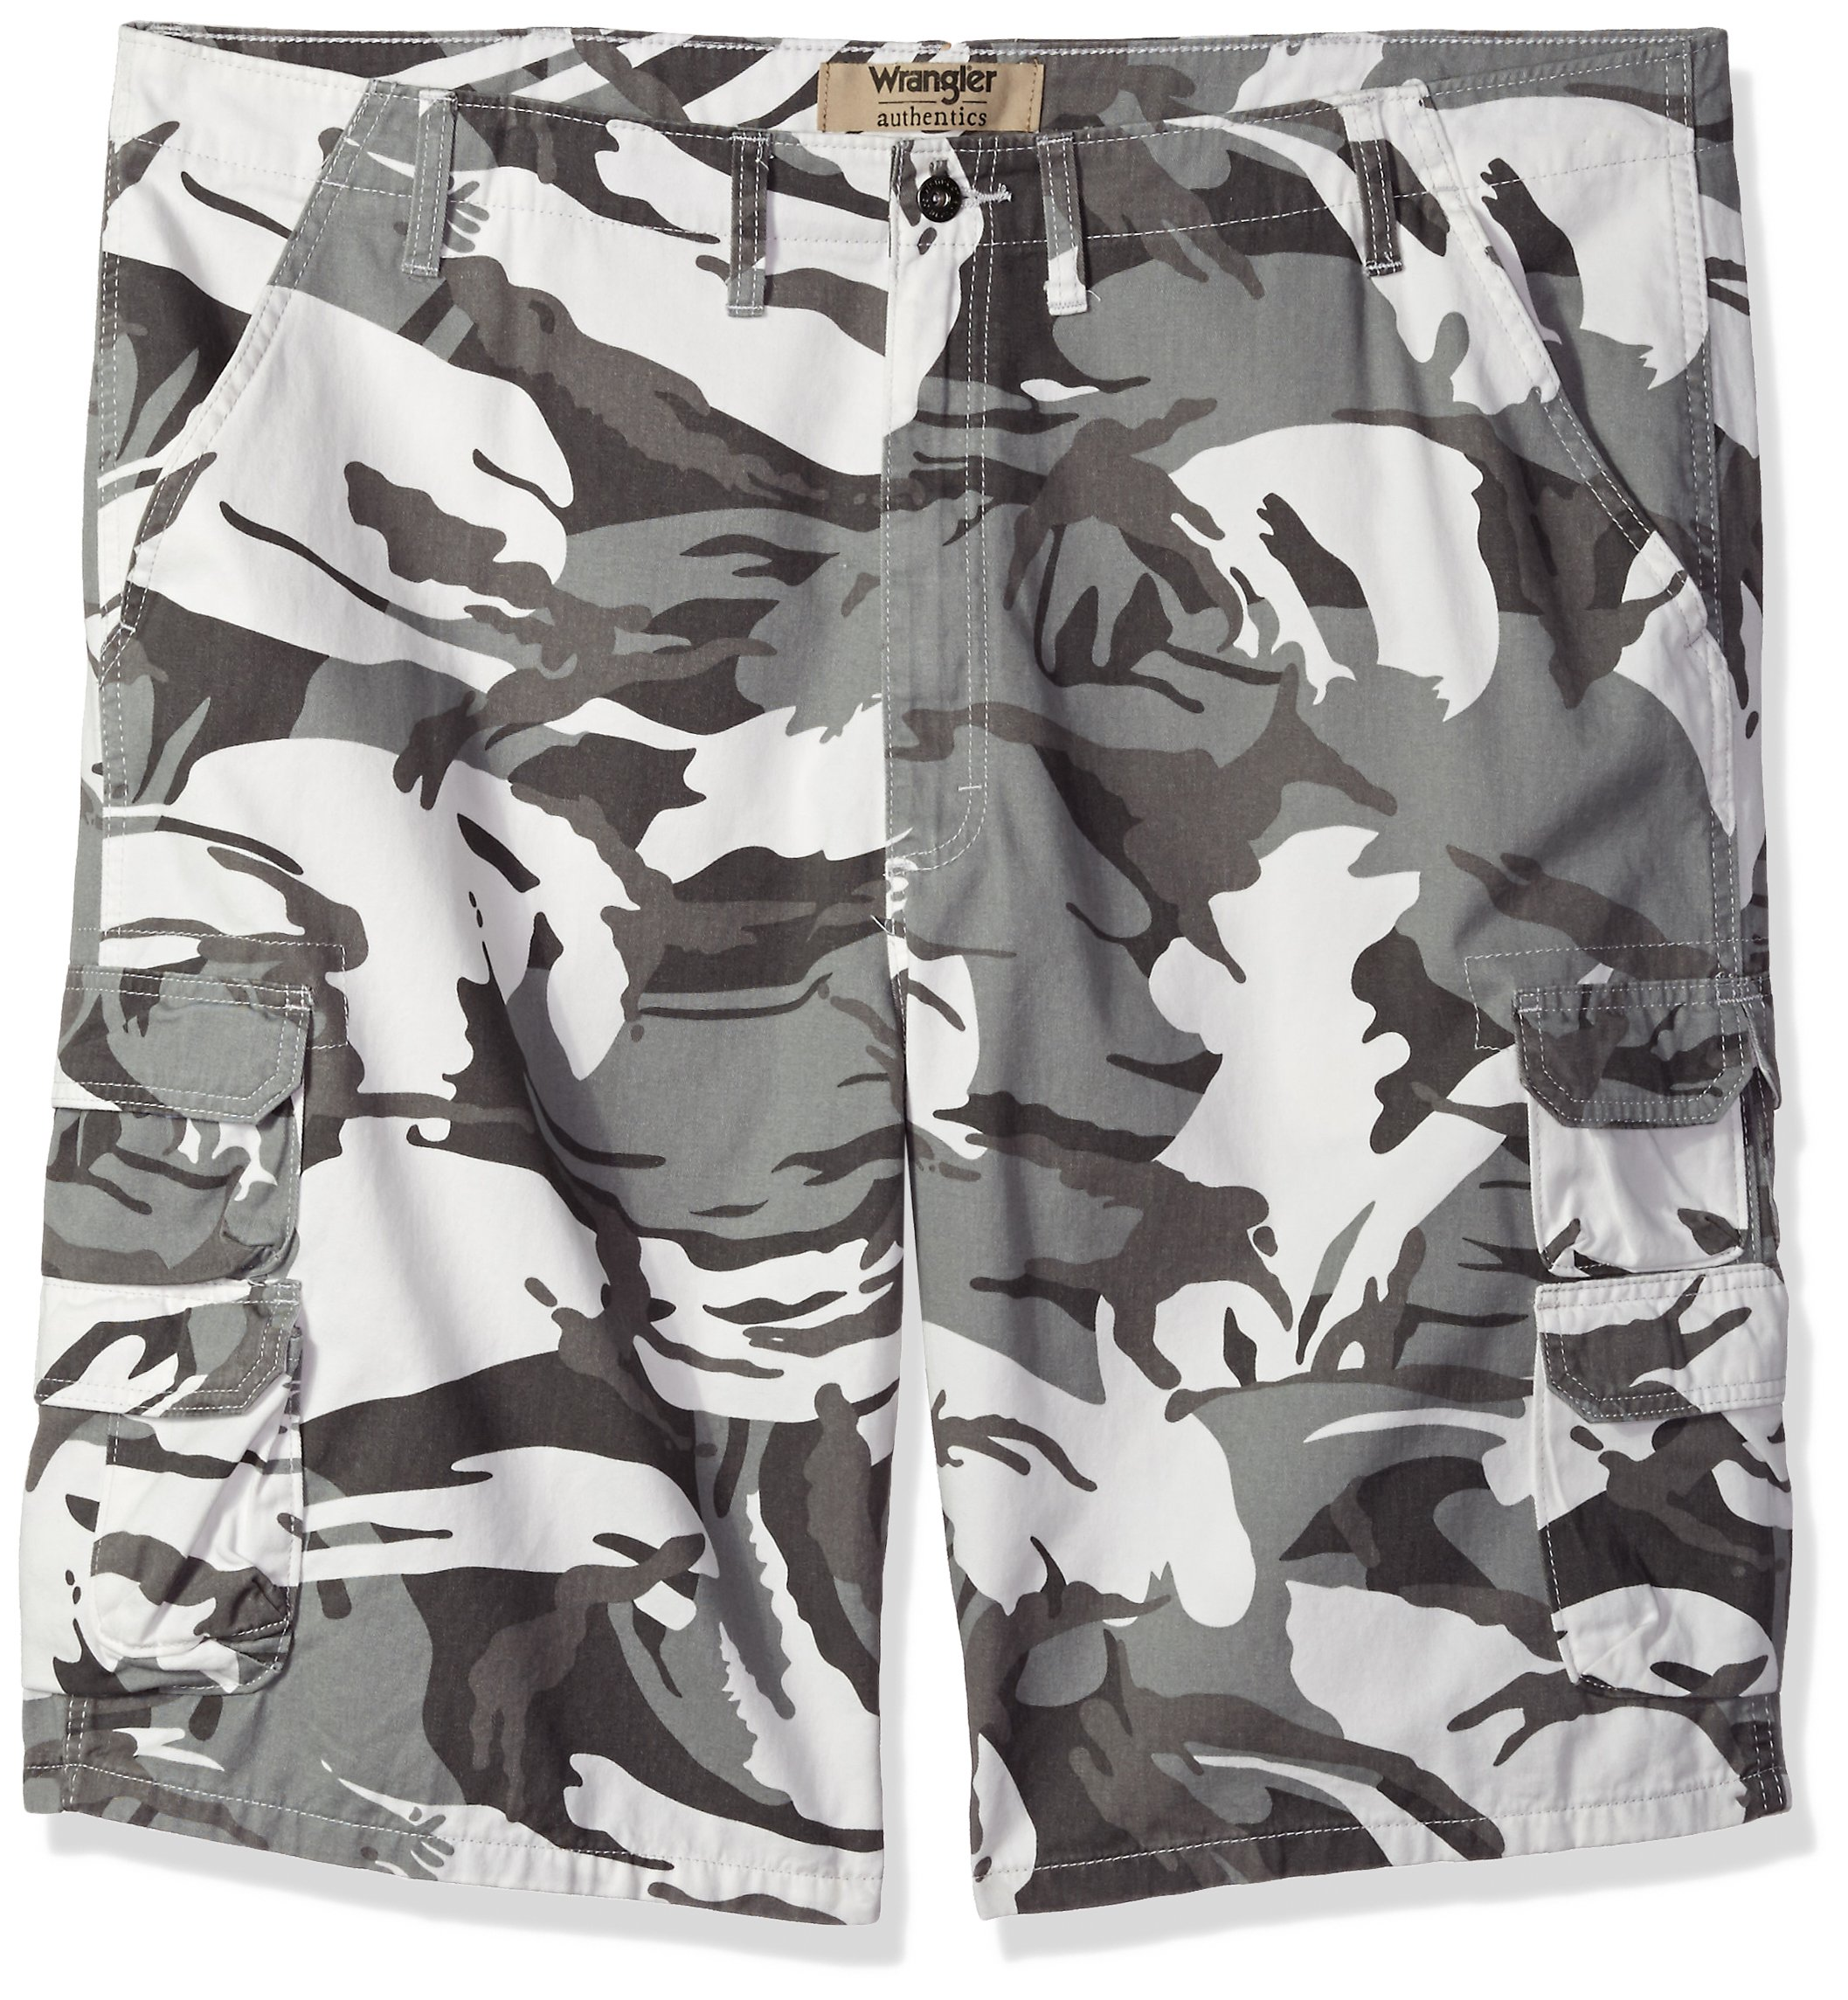 Wrangler Authentics Men's Big and Tall Premium Relaxed Fit Twill Cargo Short, White Camo, 44 by Wrangler (Image #1)